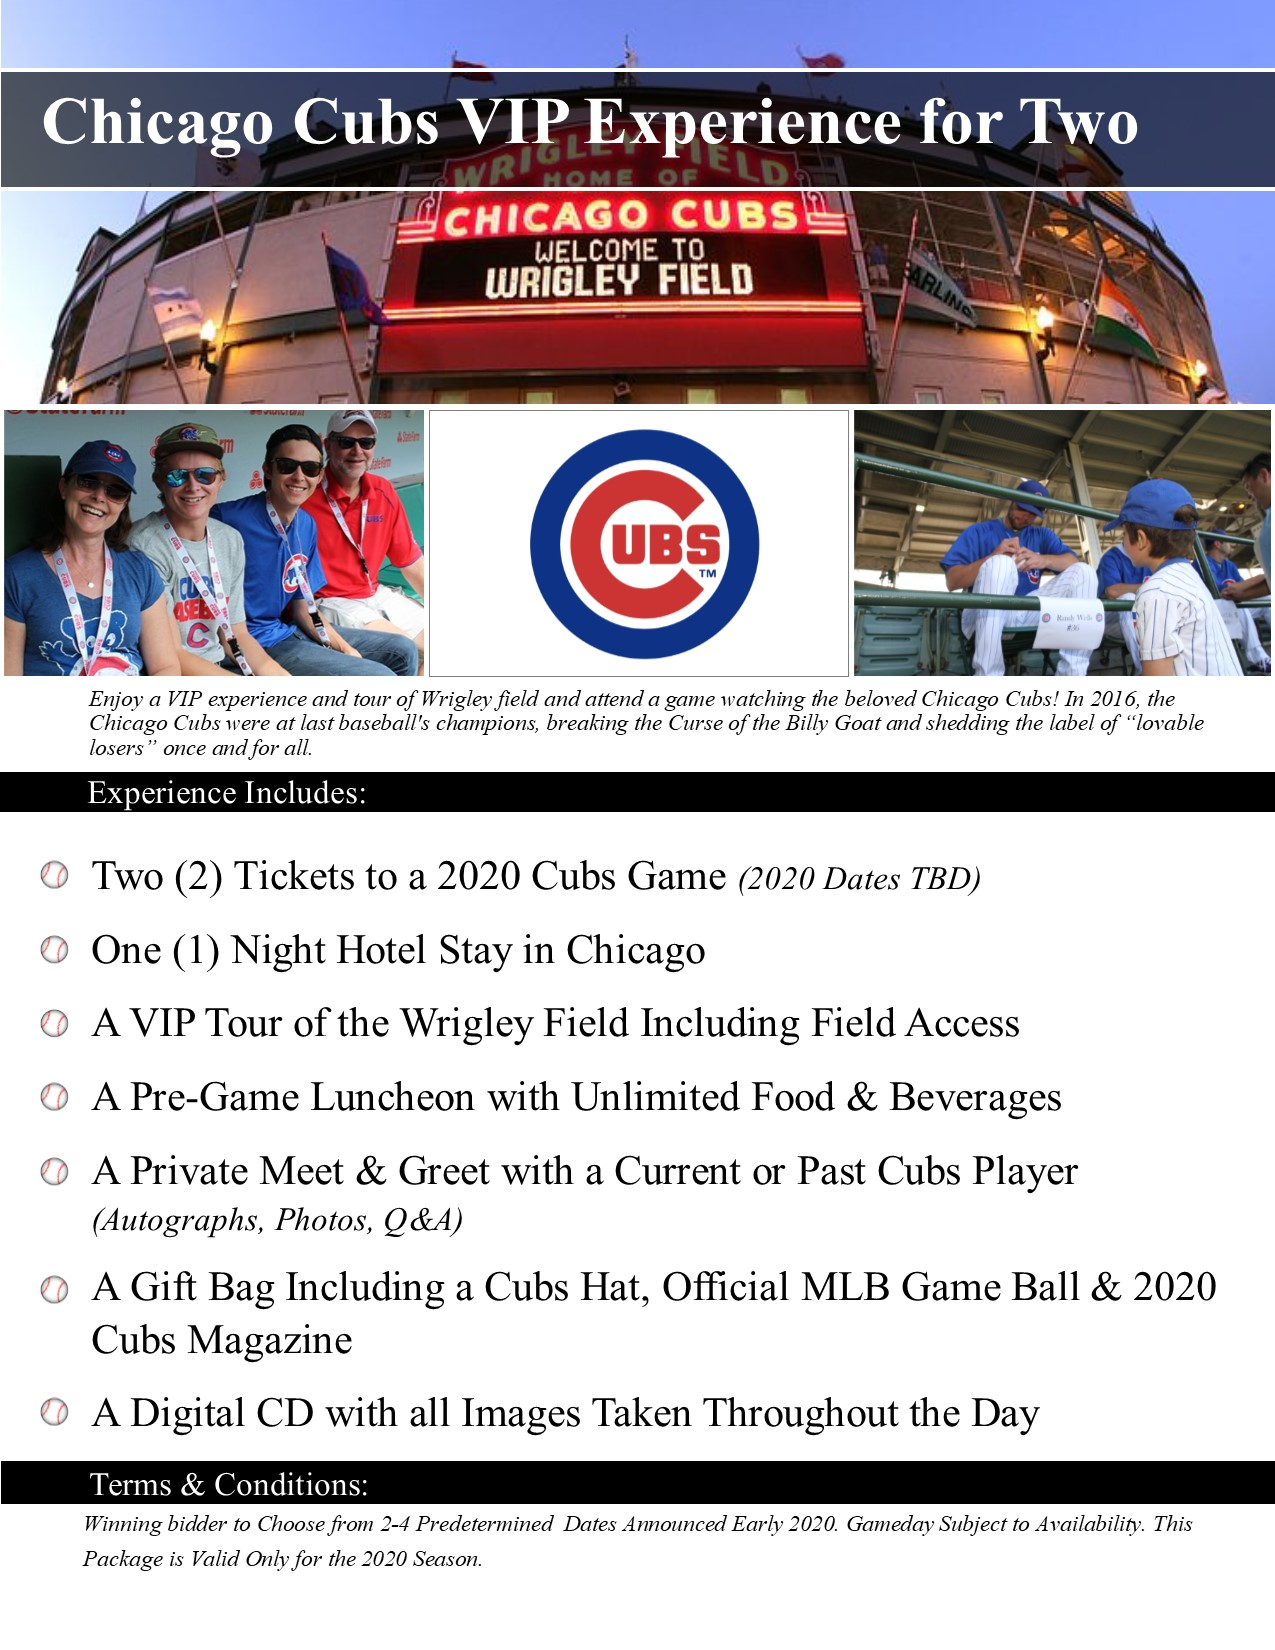 2020 Cubs VIP package for 2 people -